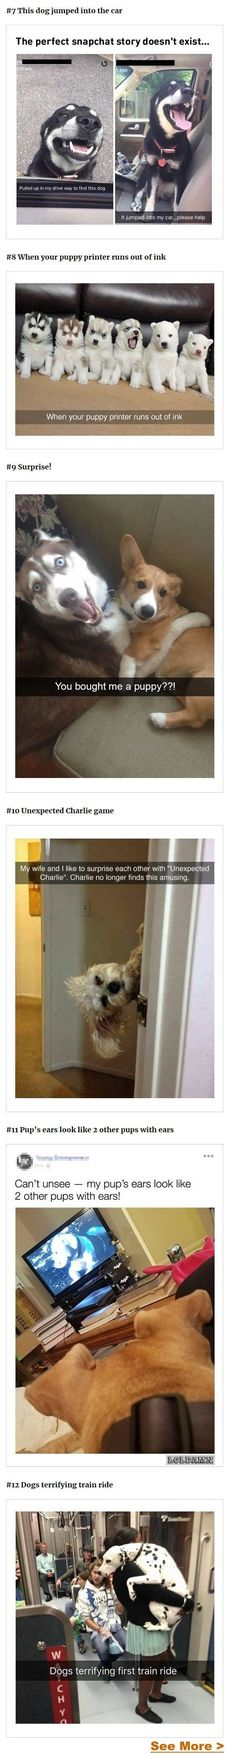 """""""Charlie no longer finds this amusing. Funny Dog Memes, Funny Animal Memes, Funny Animal Pictures, Cute Funny Animals, Funny Cute, Funny Dogs, Cute Pictures, Hilarious Quotes, Pet Memes"""